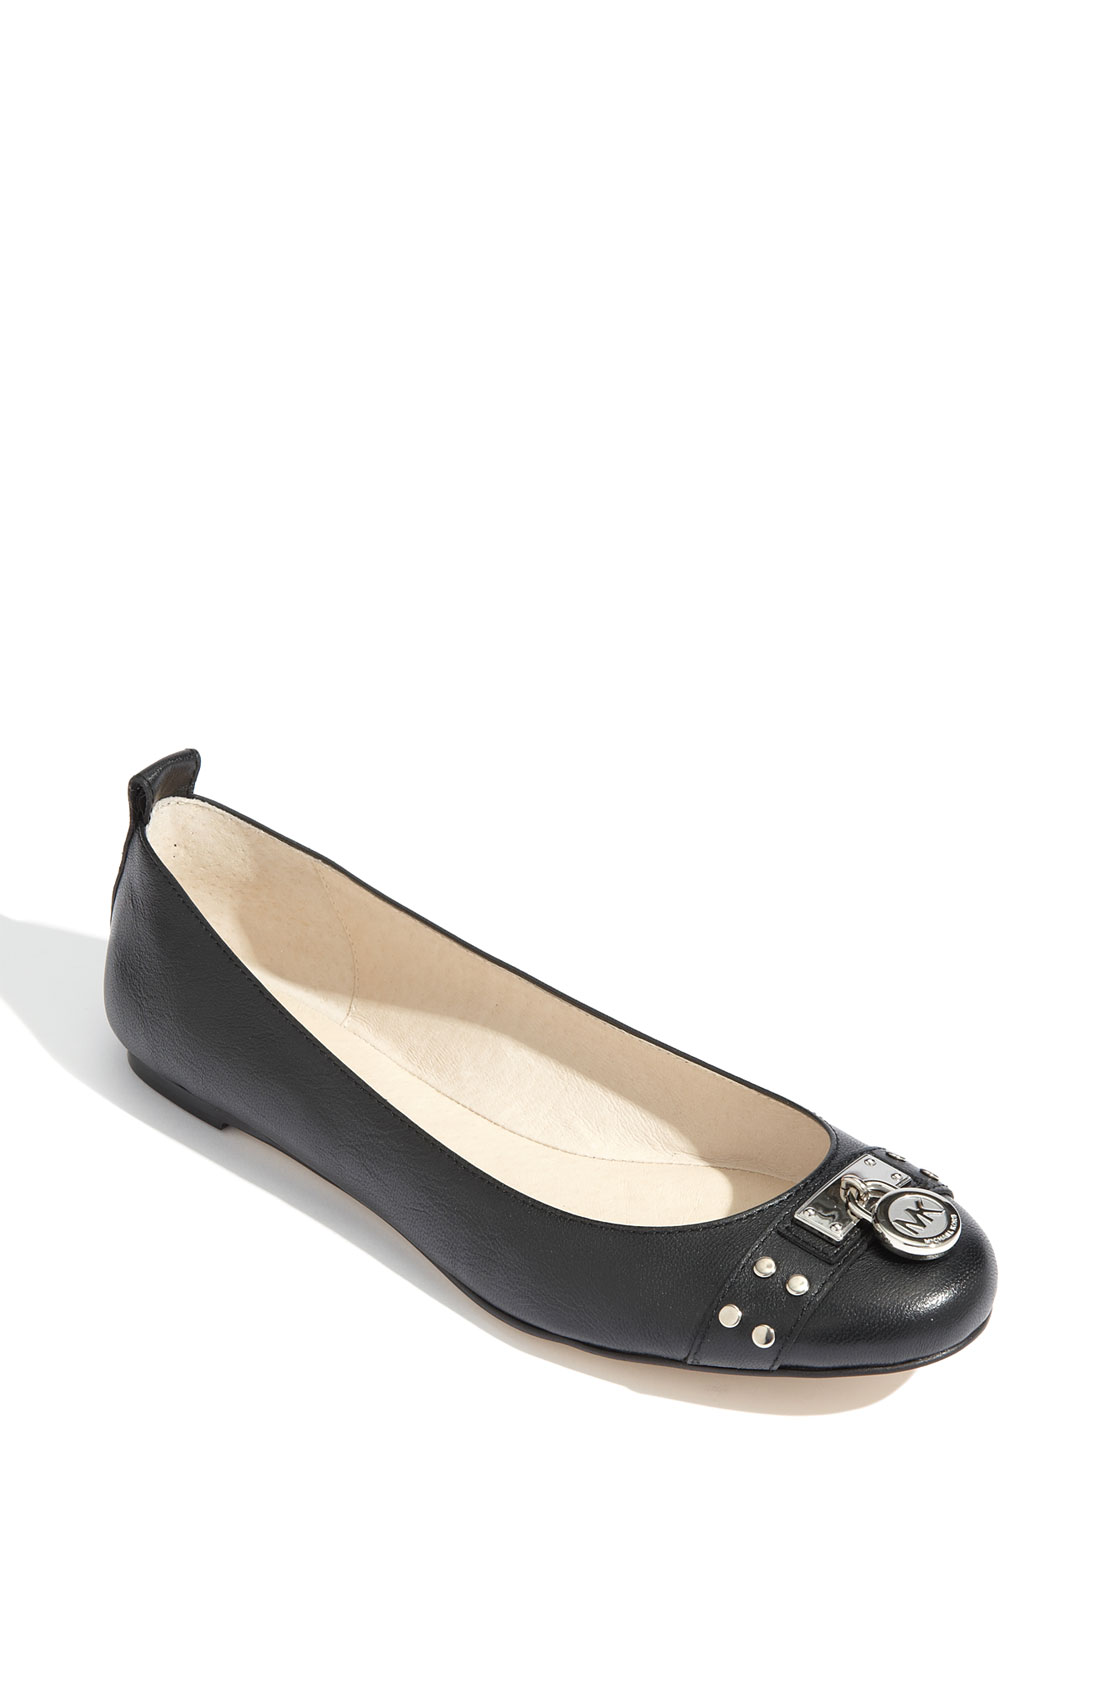 michael michael kors hamilton studded ballet flat in black lyst. Black Bedroom Furniture Sets. Home Design Ideas